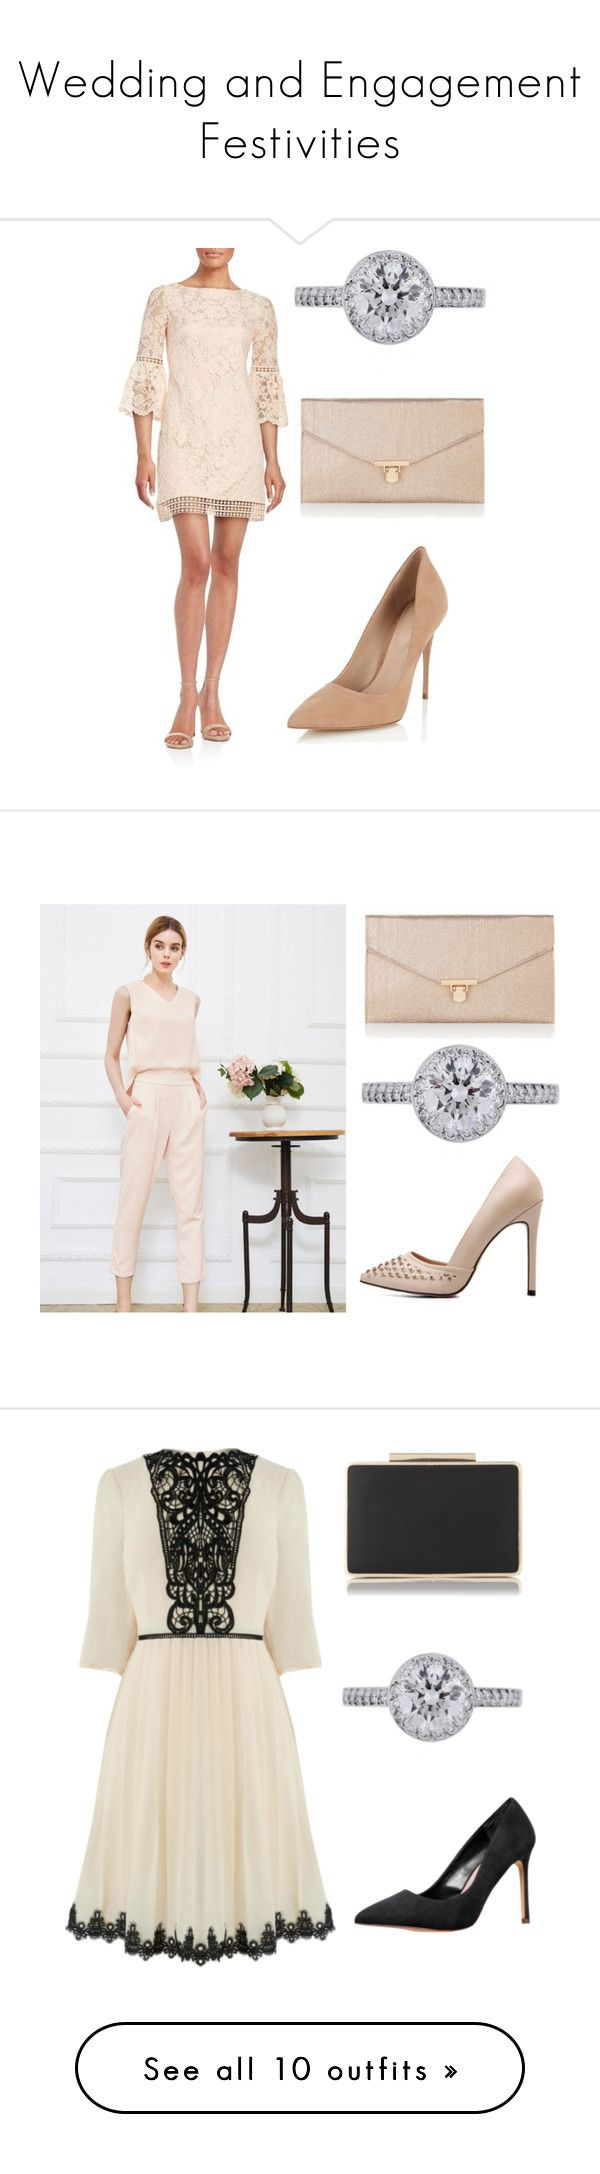 """""""Wedding and Engagement Festivities"""" by dezac-novaes on Polyvore featuring moda, Eliza J, Lipsy, Tiffany & Co., Accessorize, WithChic, Carvela, Ultimate, Neville e Van Cleef & Arpels"""